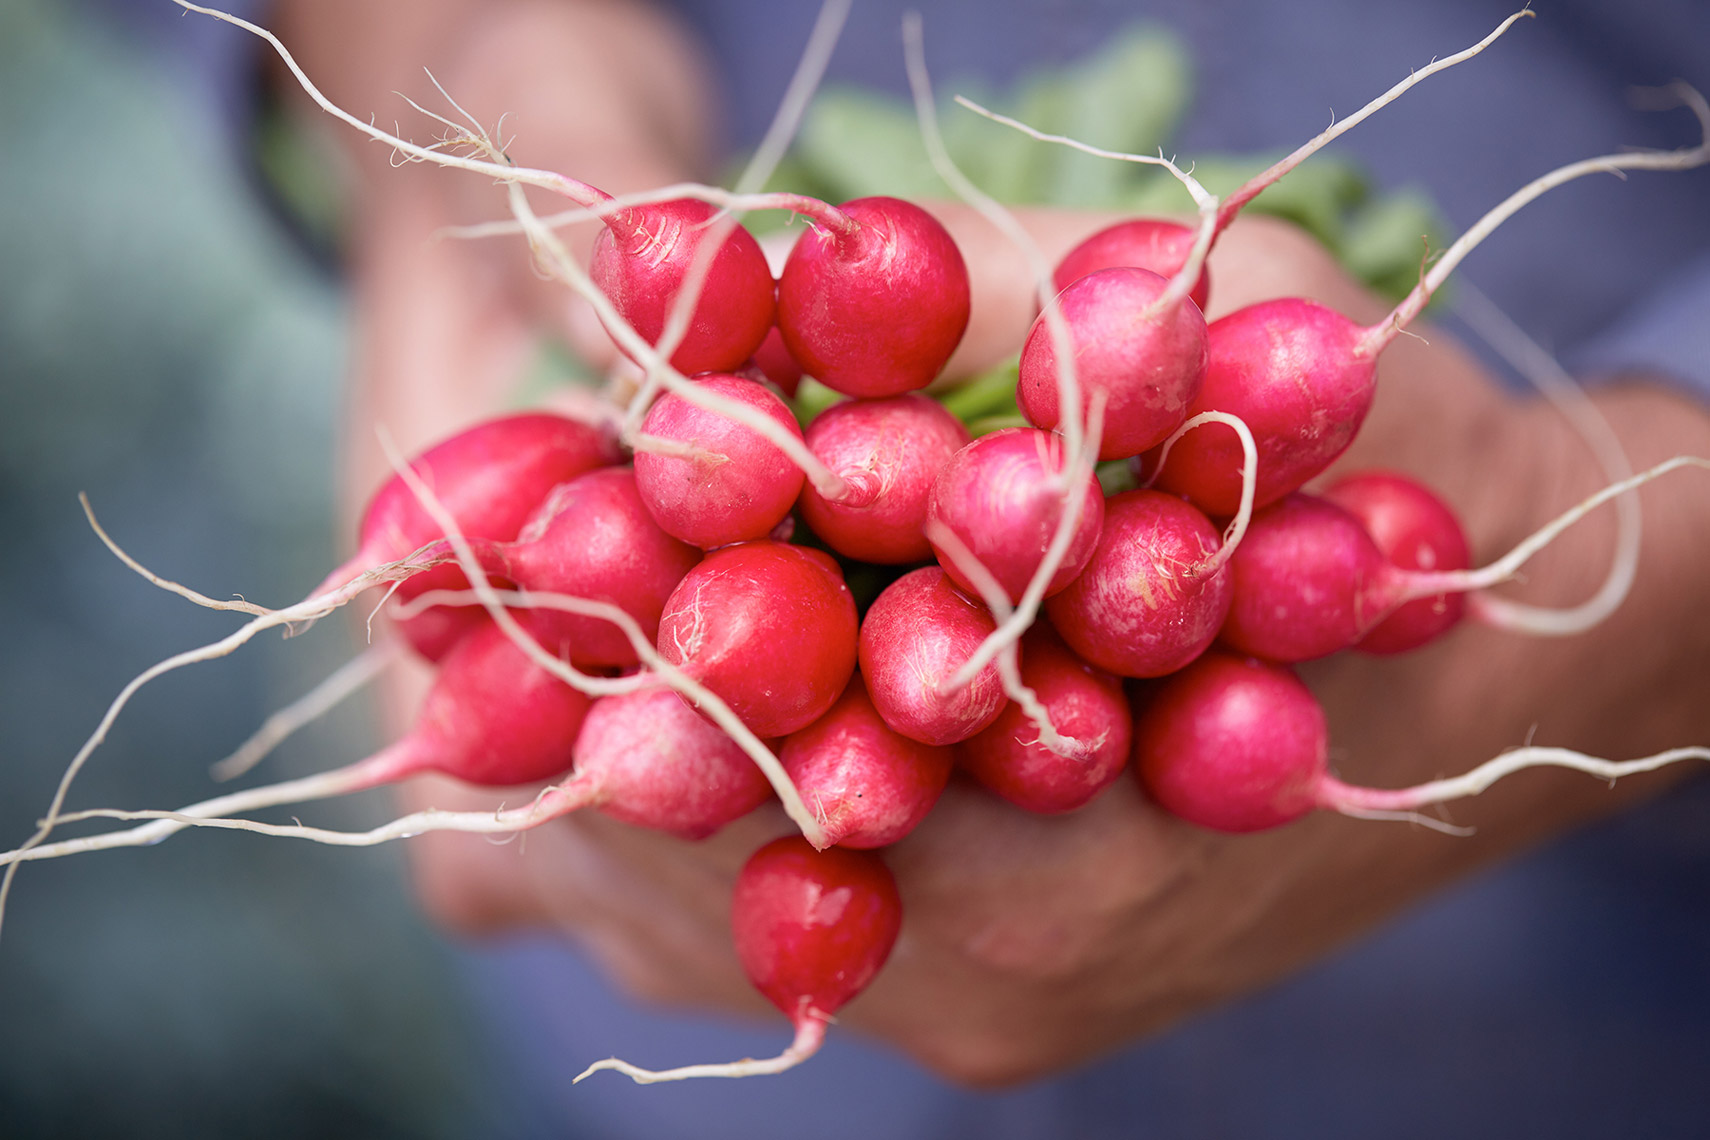 AlanCampbellPhotography, Radishes fresh from the garden